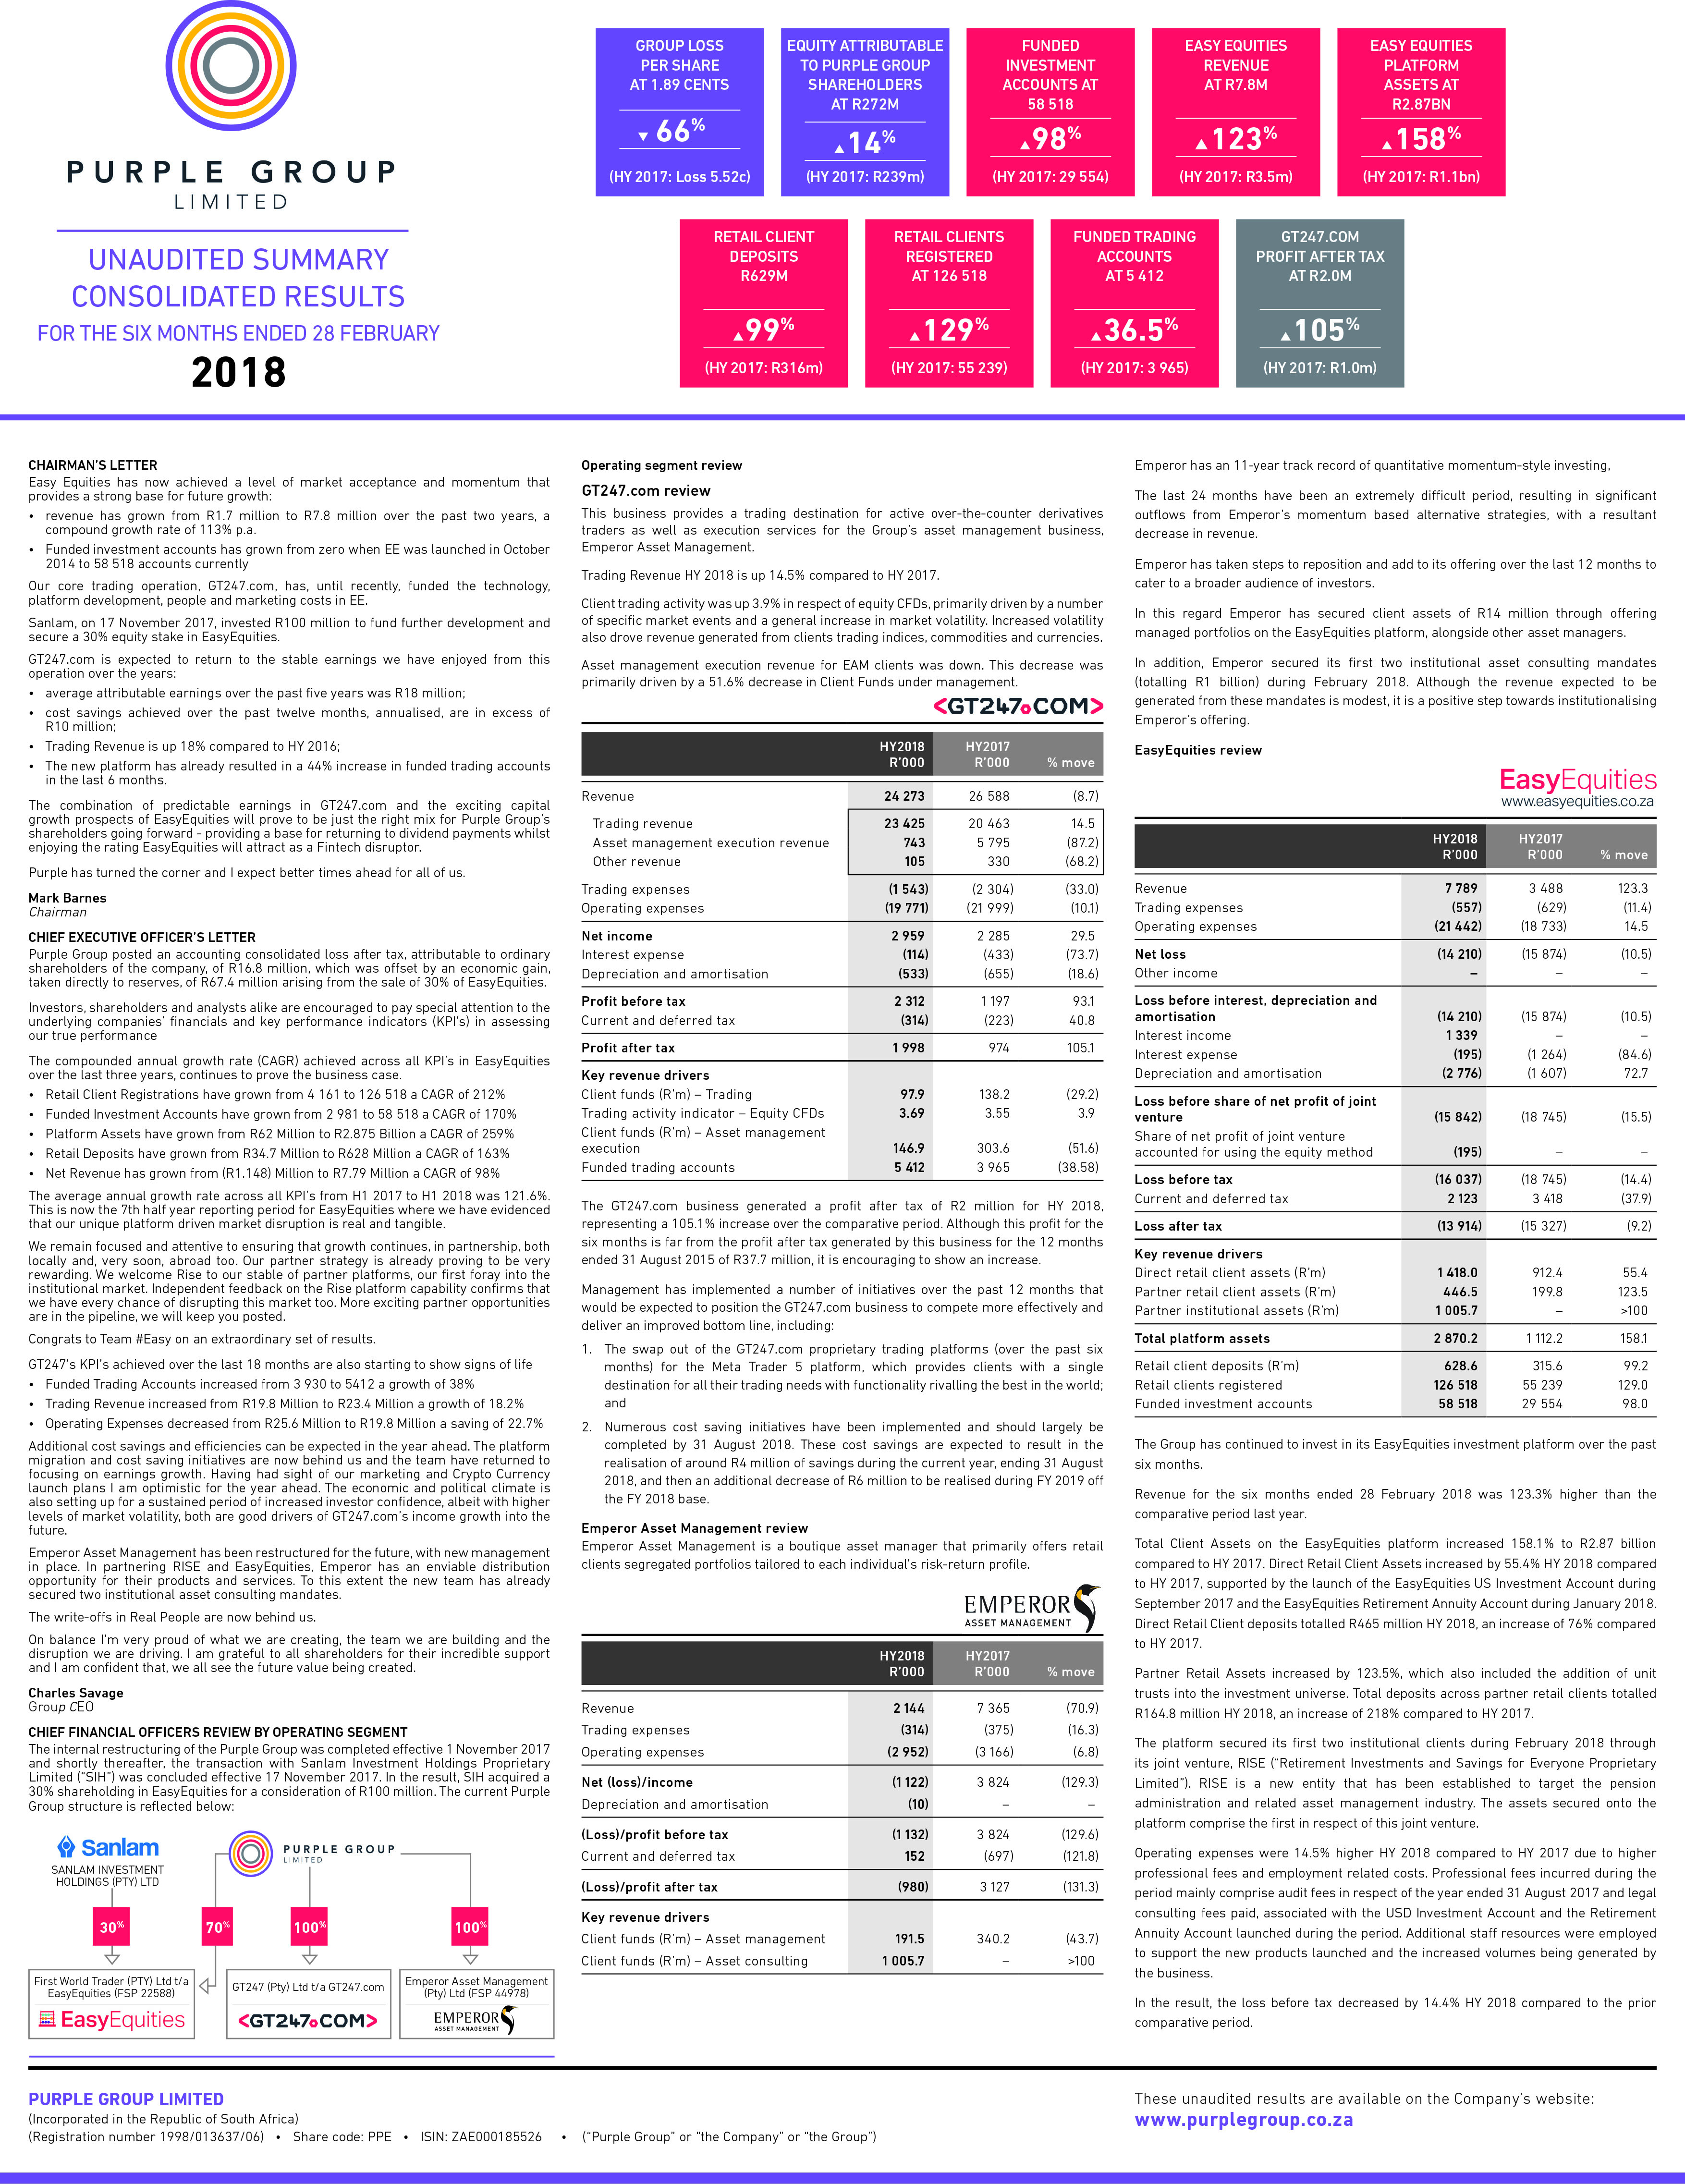 Read the full Purple Group Financial Results